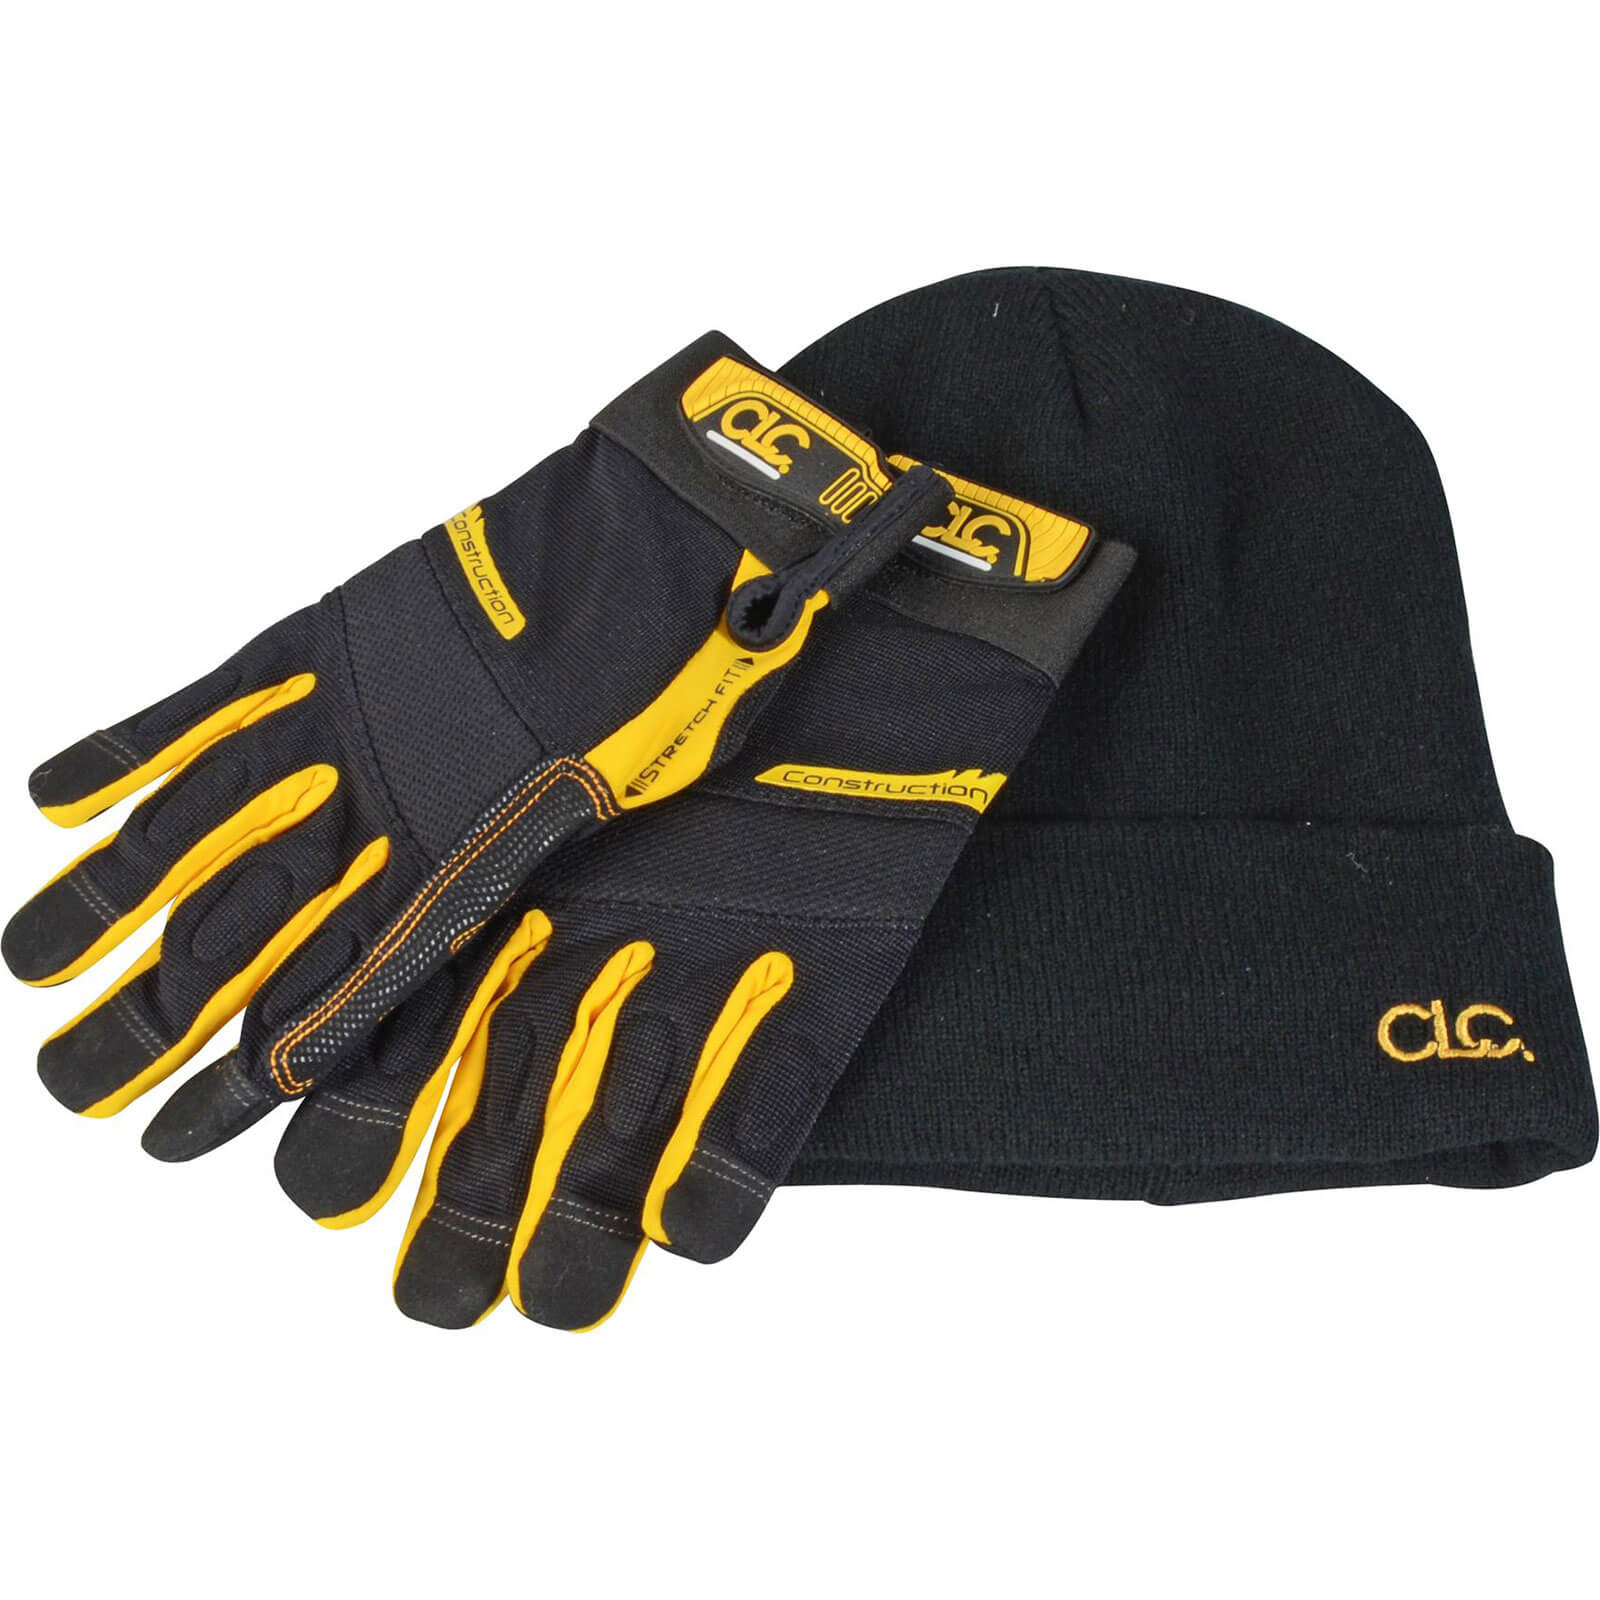 Image of CLC Flex-Grip Work Gloves & Beanie Hat